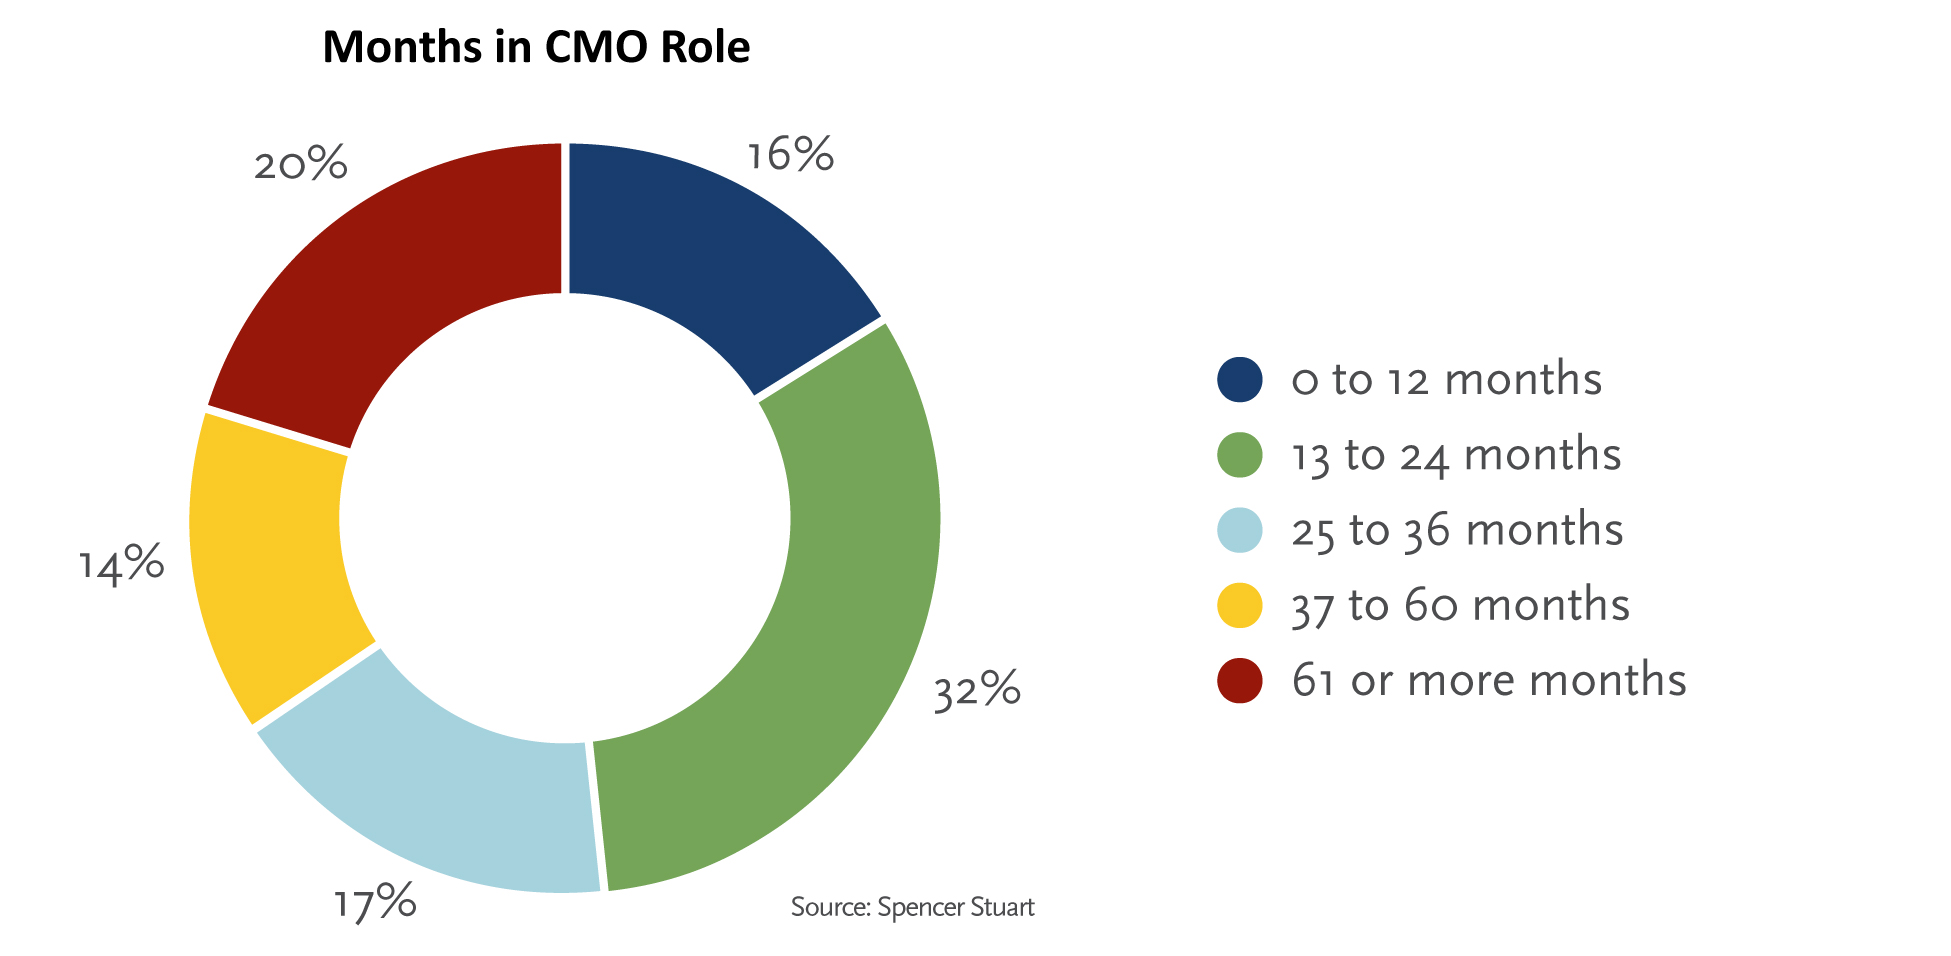 However, We Have Seen A Decline In The Number Of CMOs Who Have Been In The  Role For Three Or More Years, 34% In 2016 Versus 41% In 2015 And 49% In  2014.